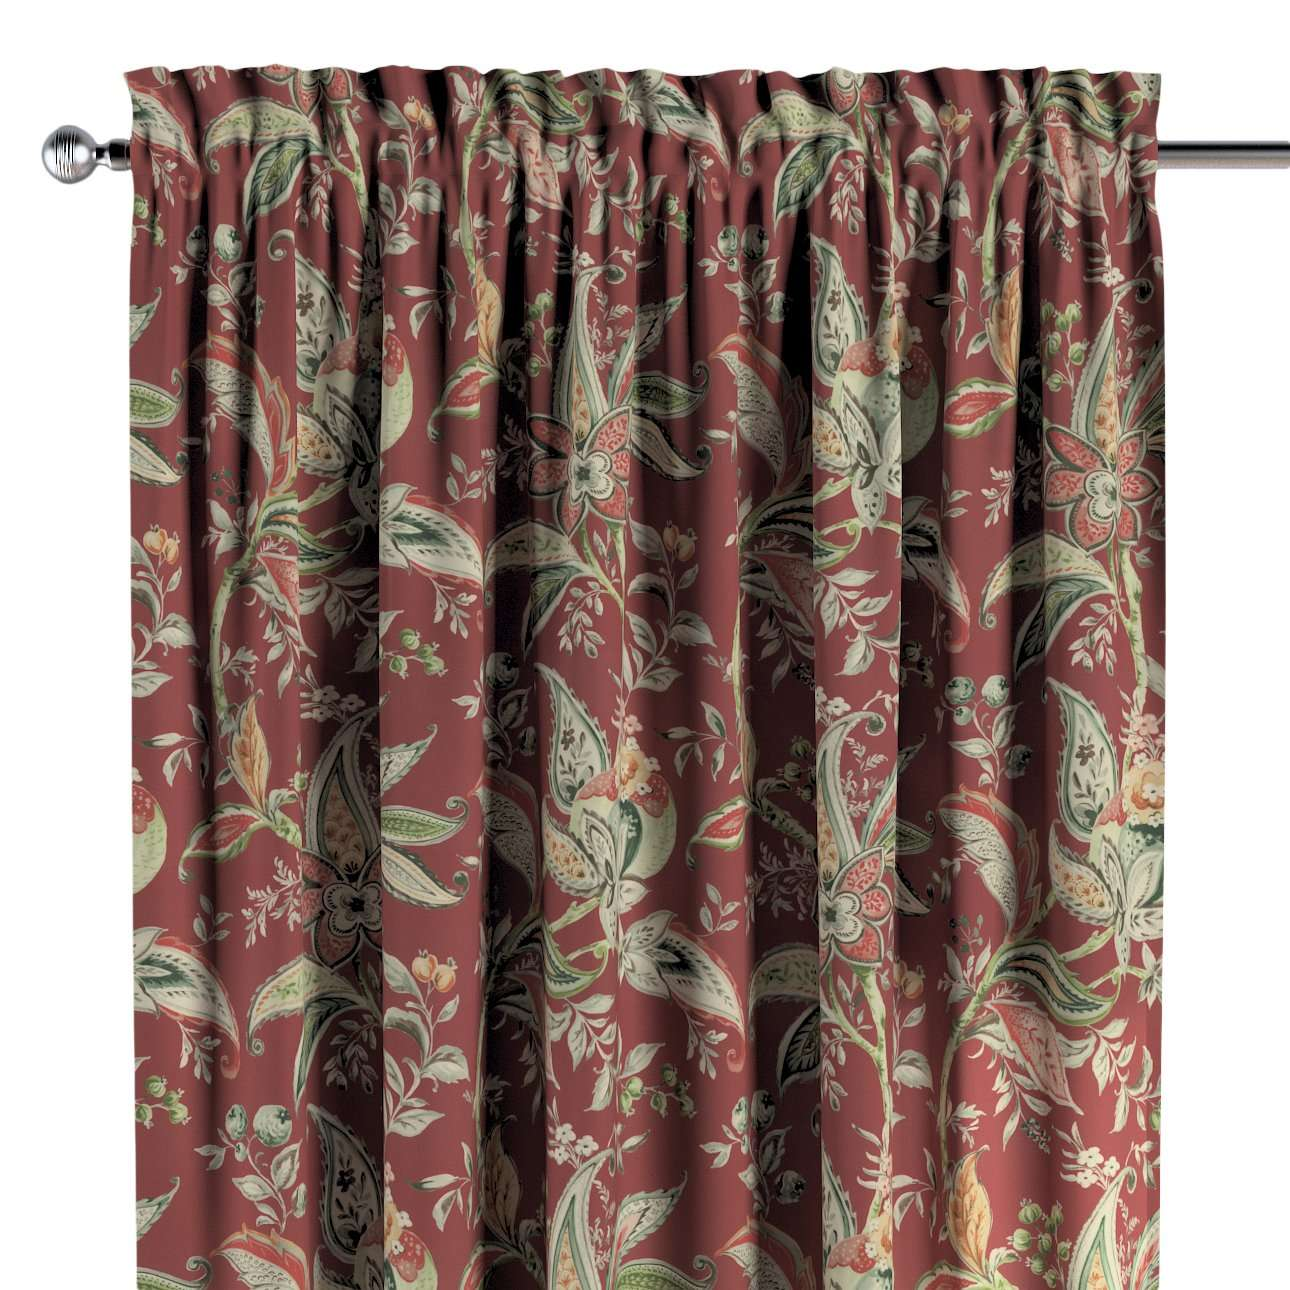 Slot and frill curtains in collection Gardenia, fabric: 142-12